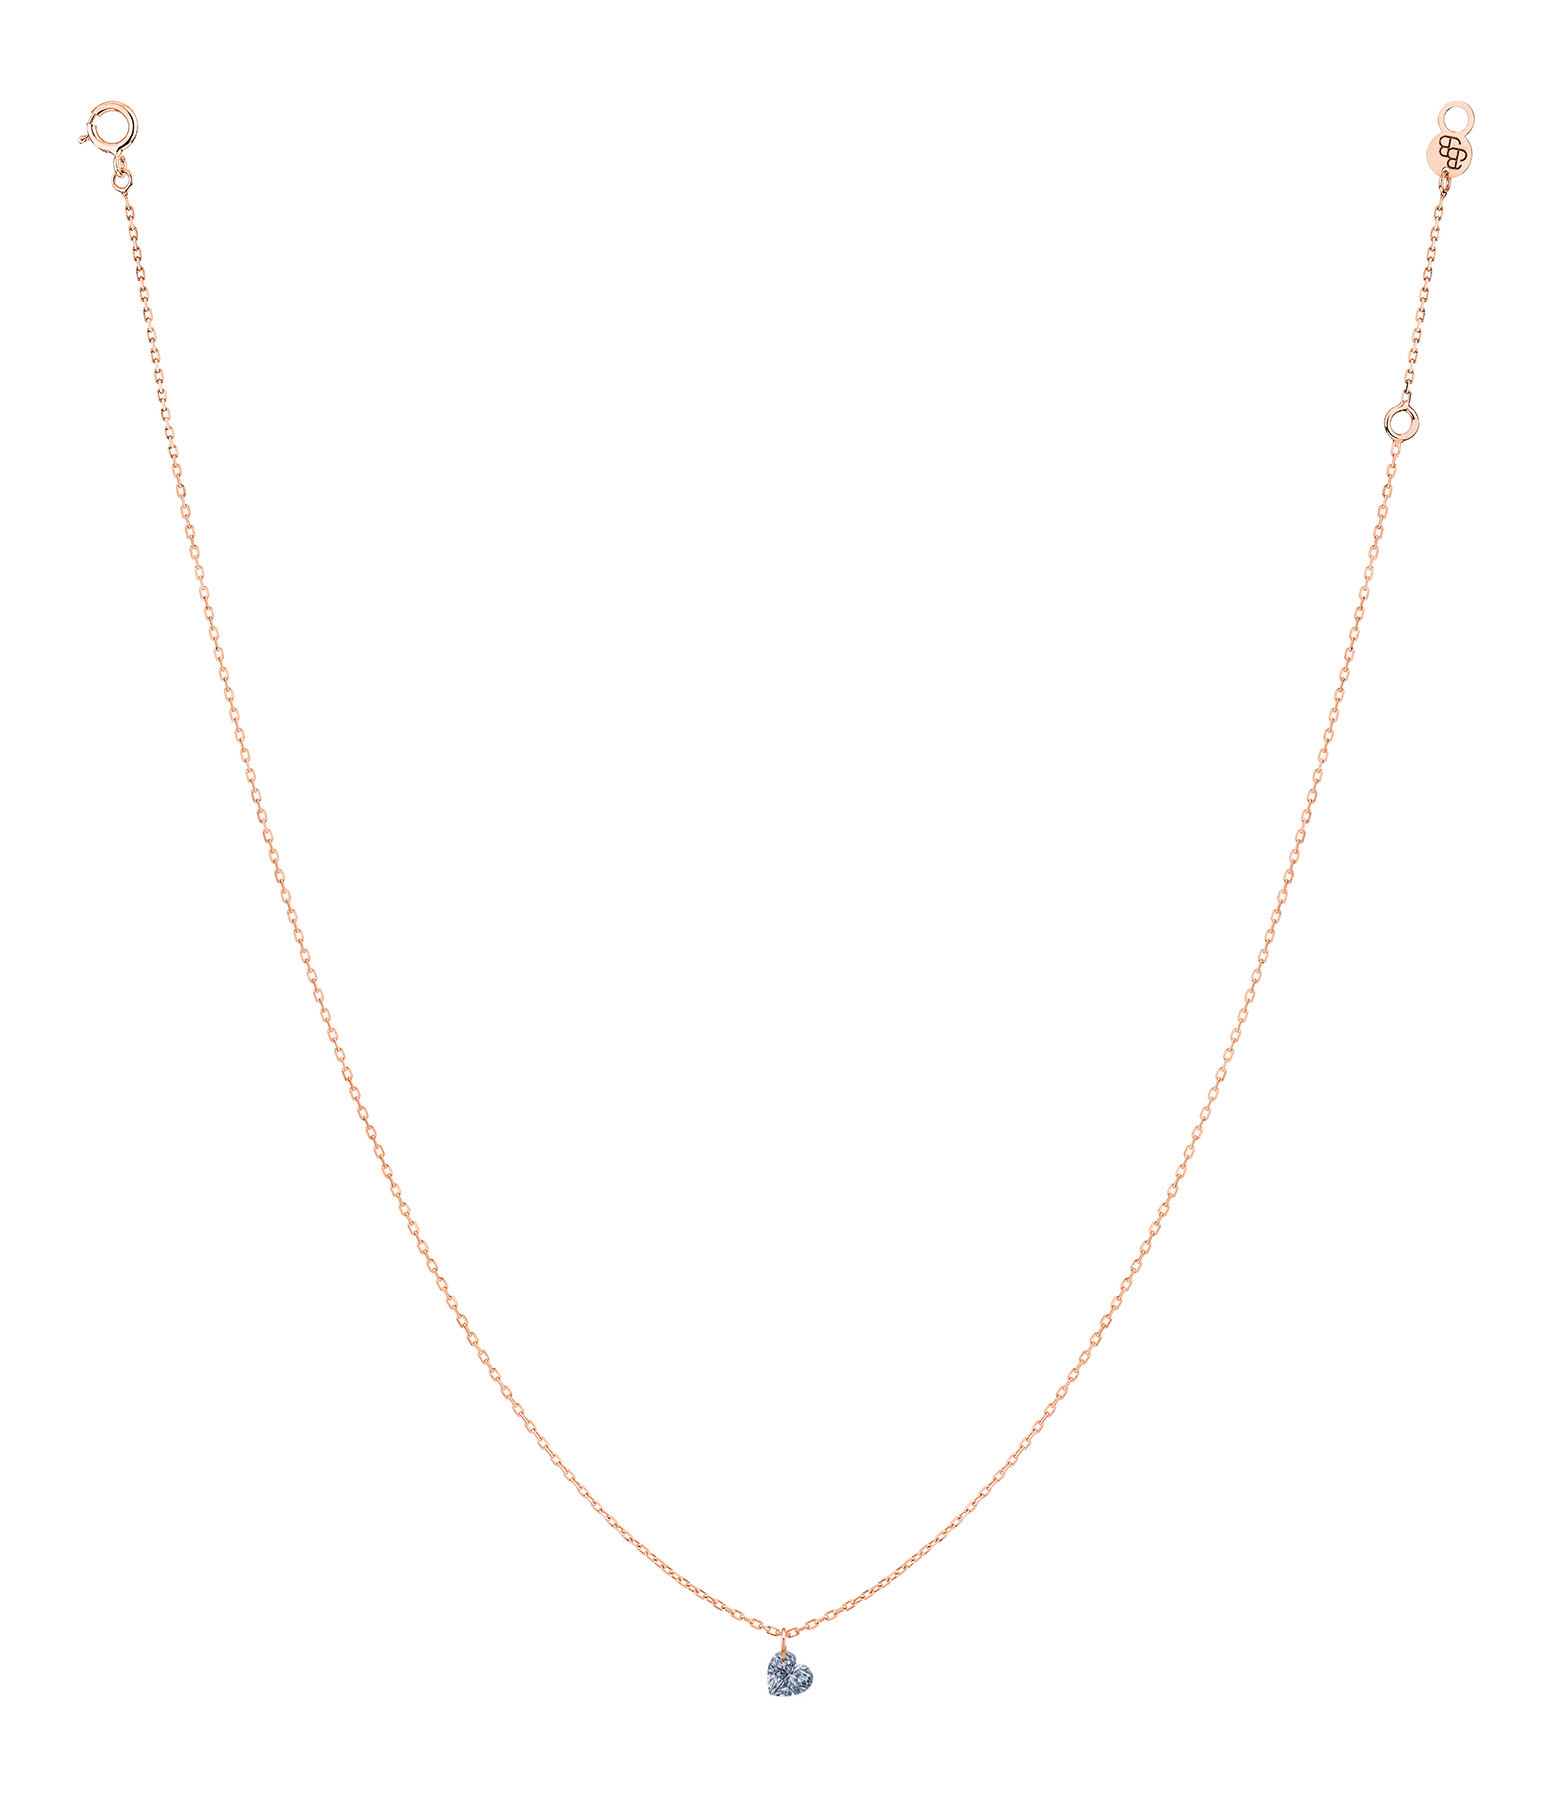 LA BRUNE & LA BLONDE - Collier 360° Cœur Diamant 0,15 Or Rose